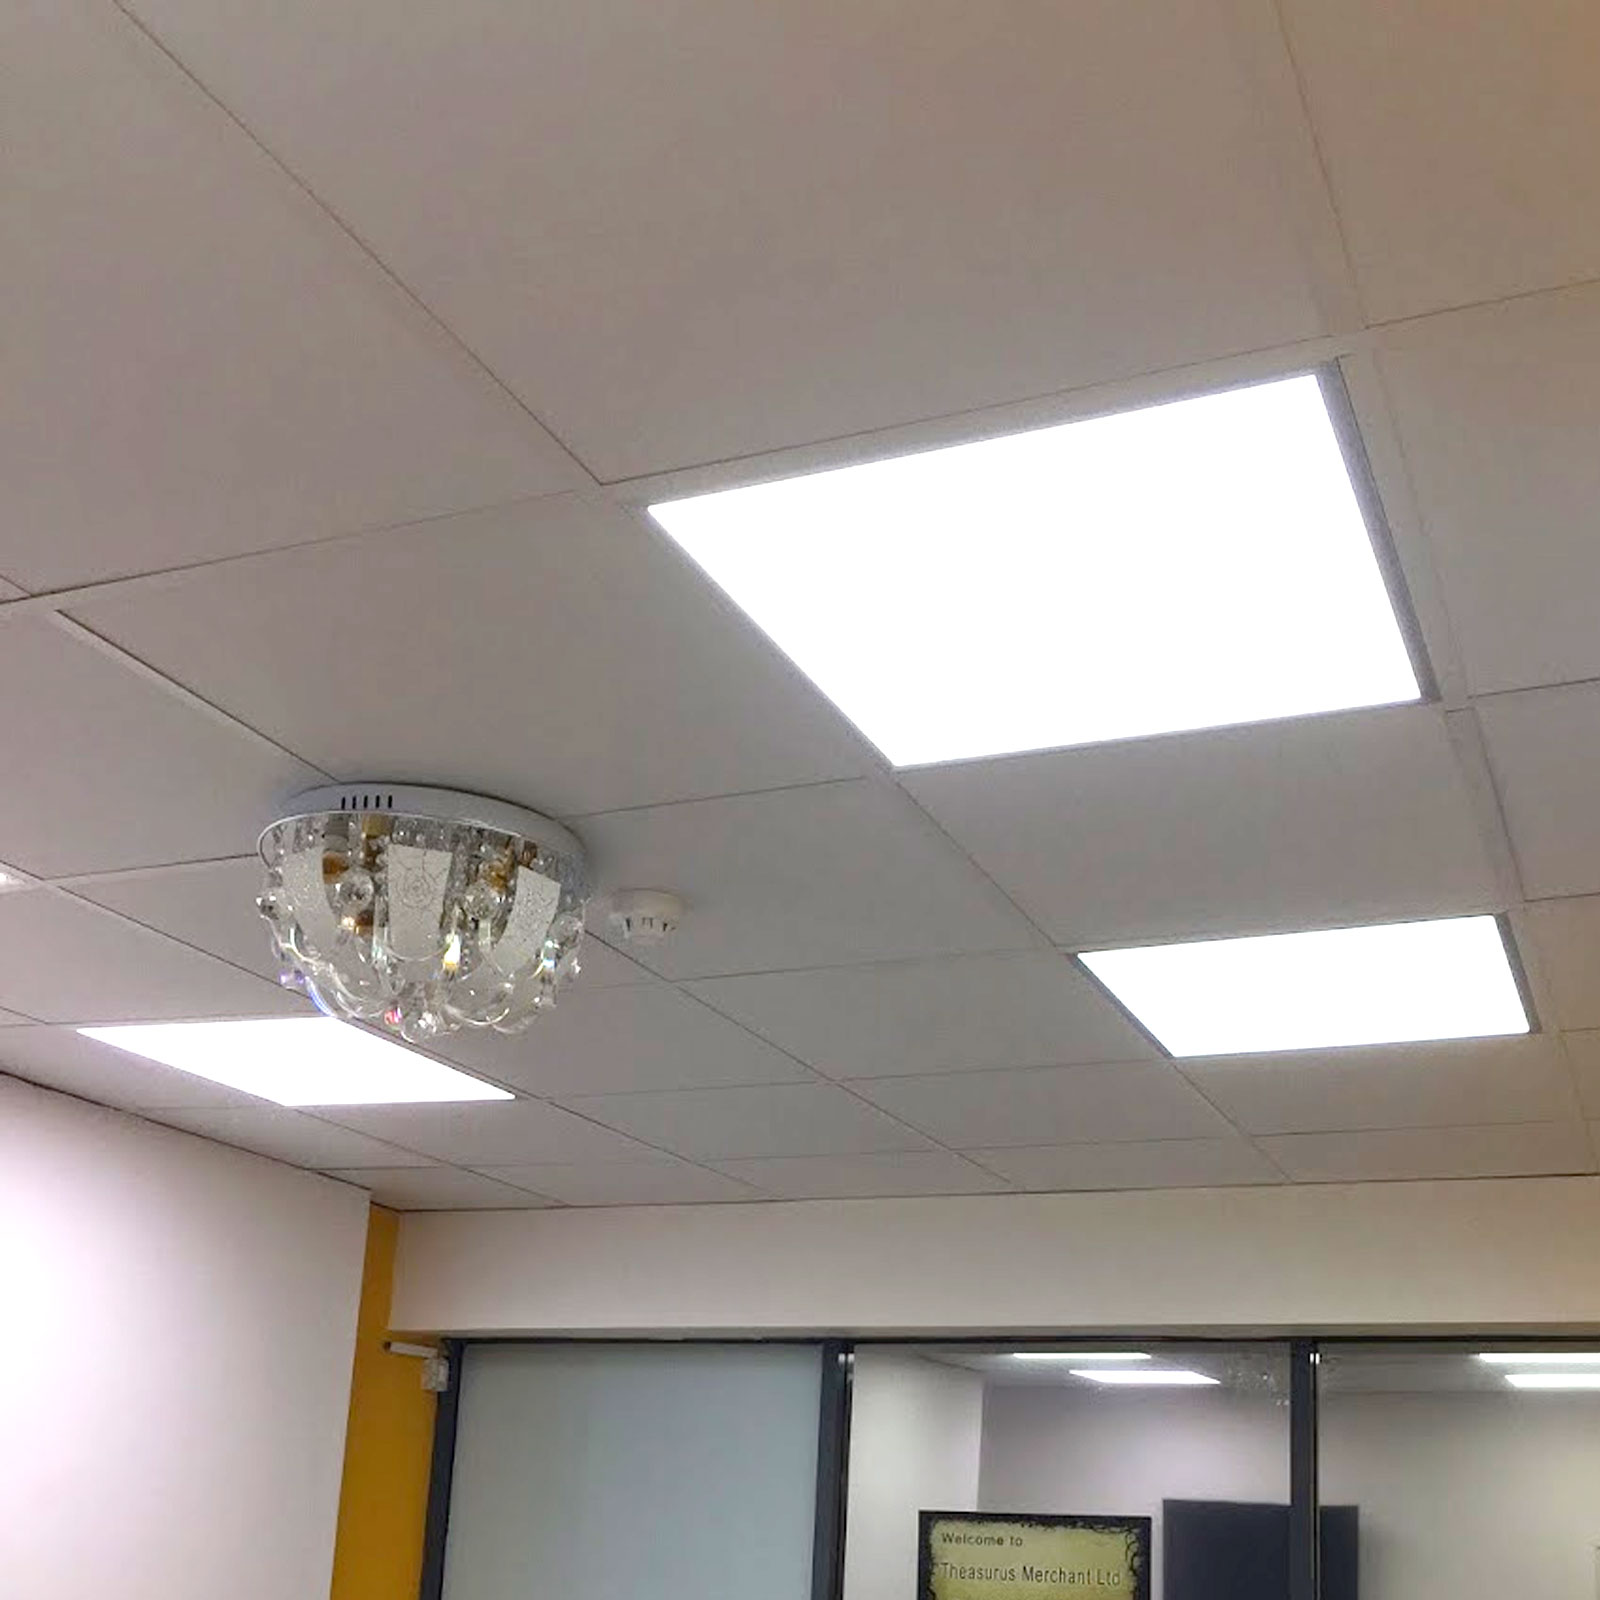 Recessed lights for ceiling tiles line art styrofoam ceiling tile r led ceiling panels cucctv dailygadgetfo Choice Image